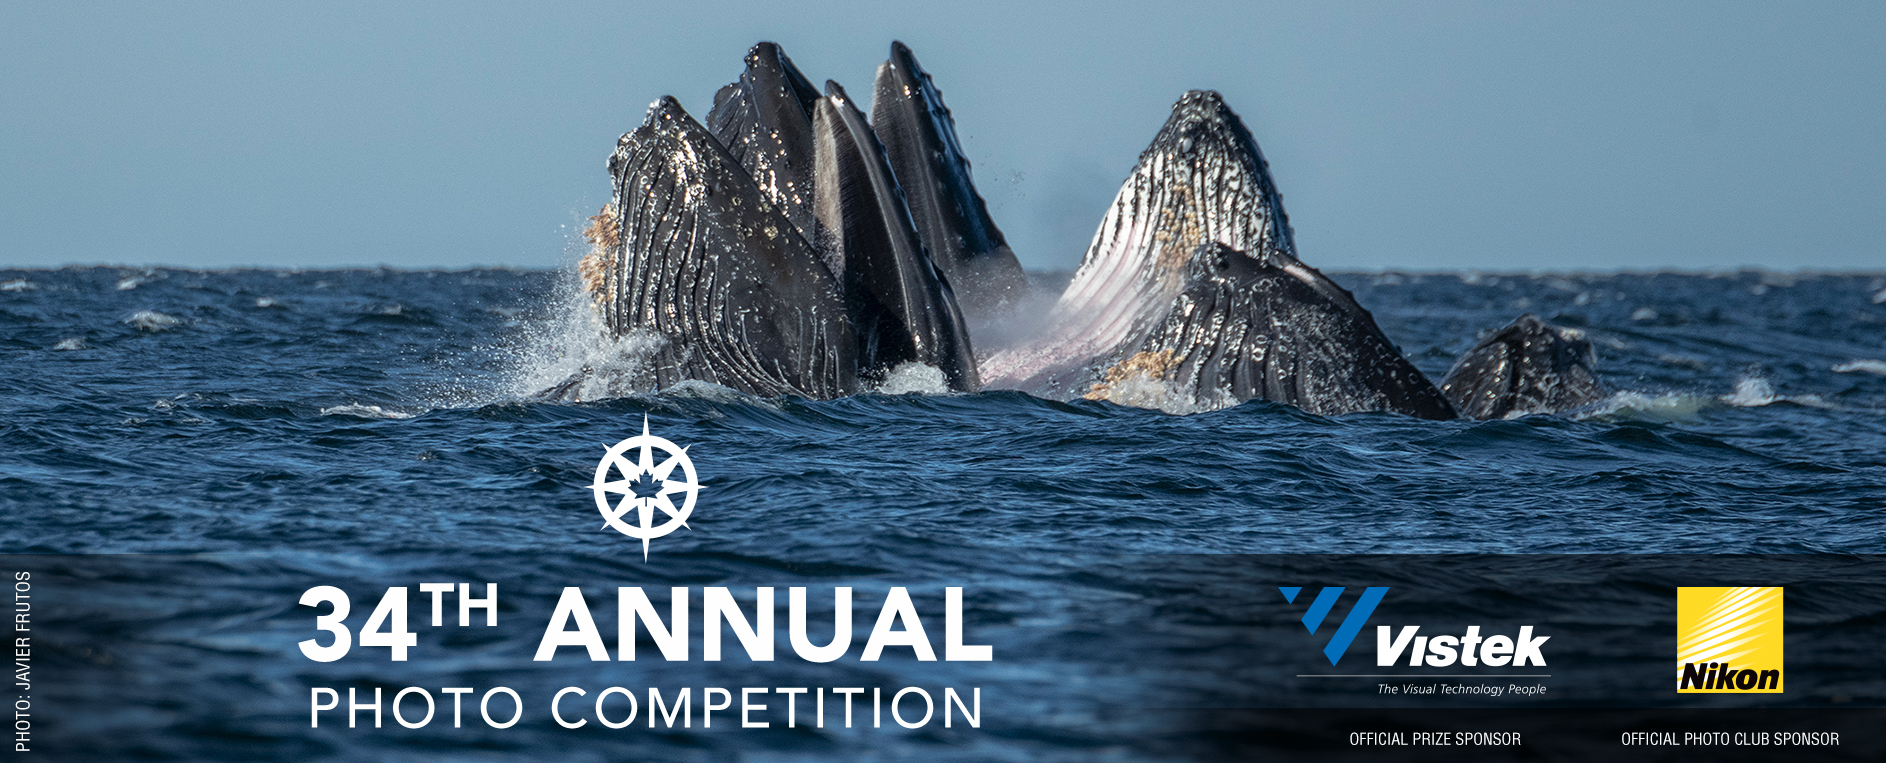 Canadian Geographic's Annual Photo Competition